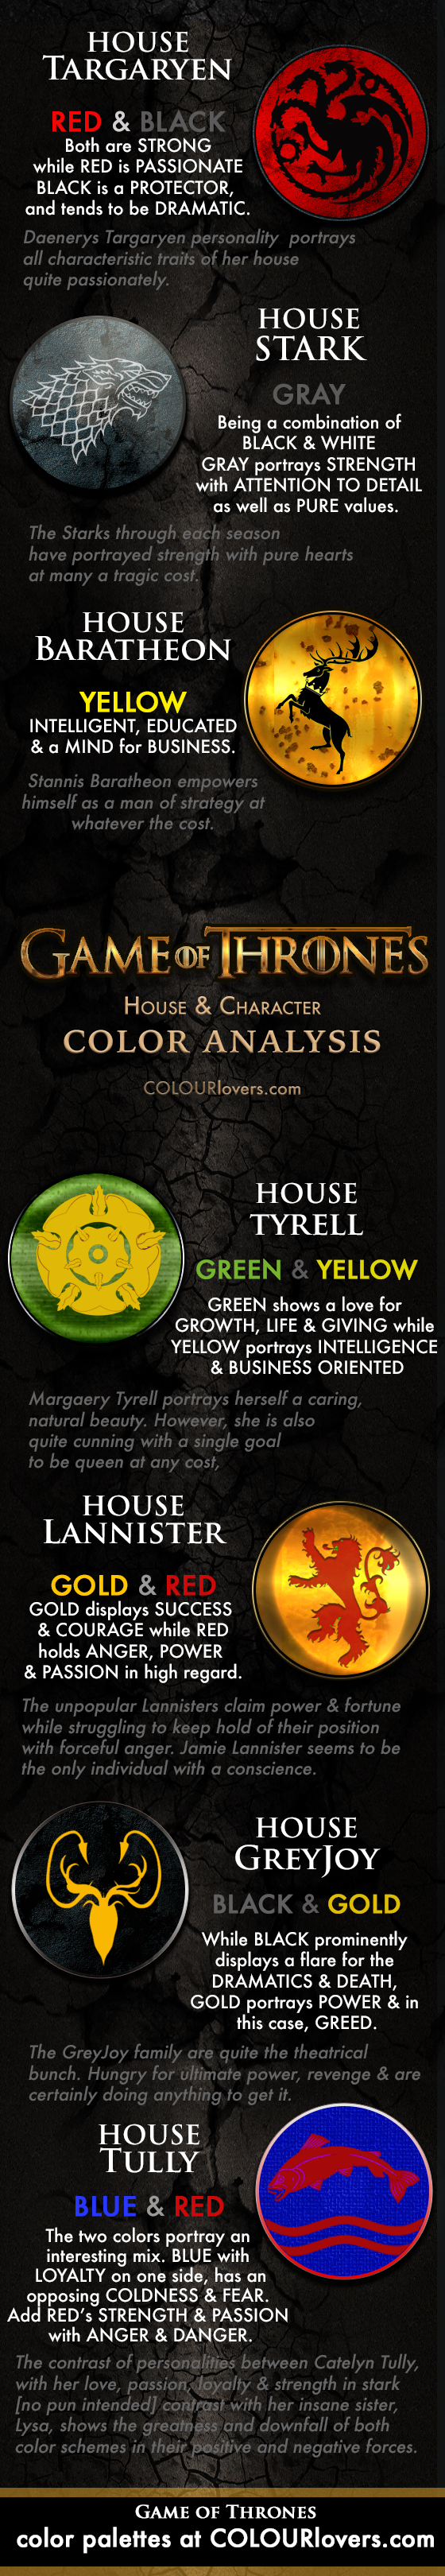 infographic_GameOfThrones_ColorAnalysis